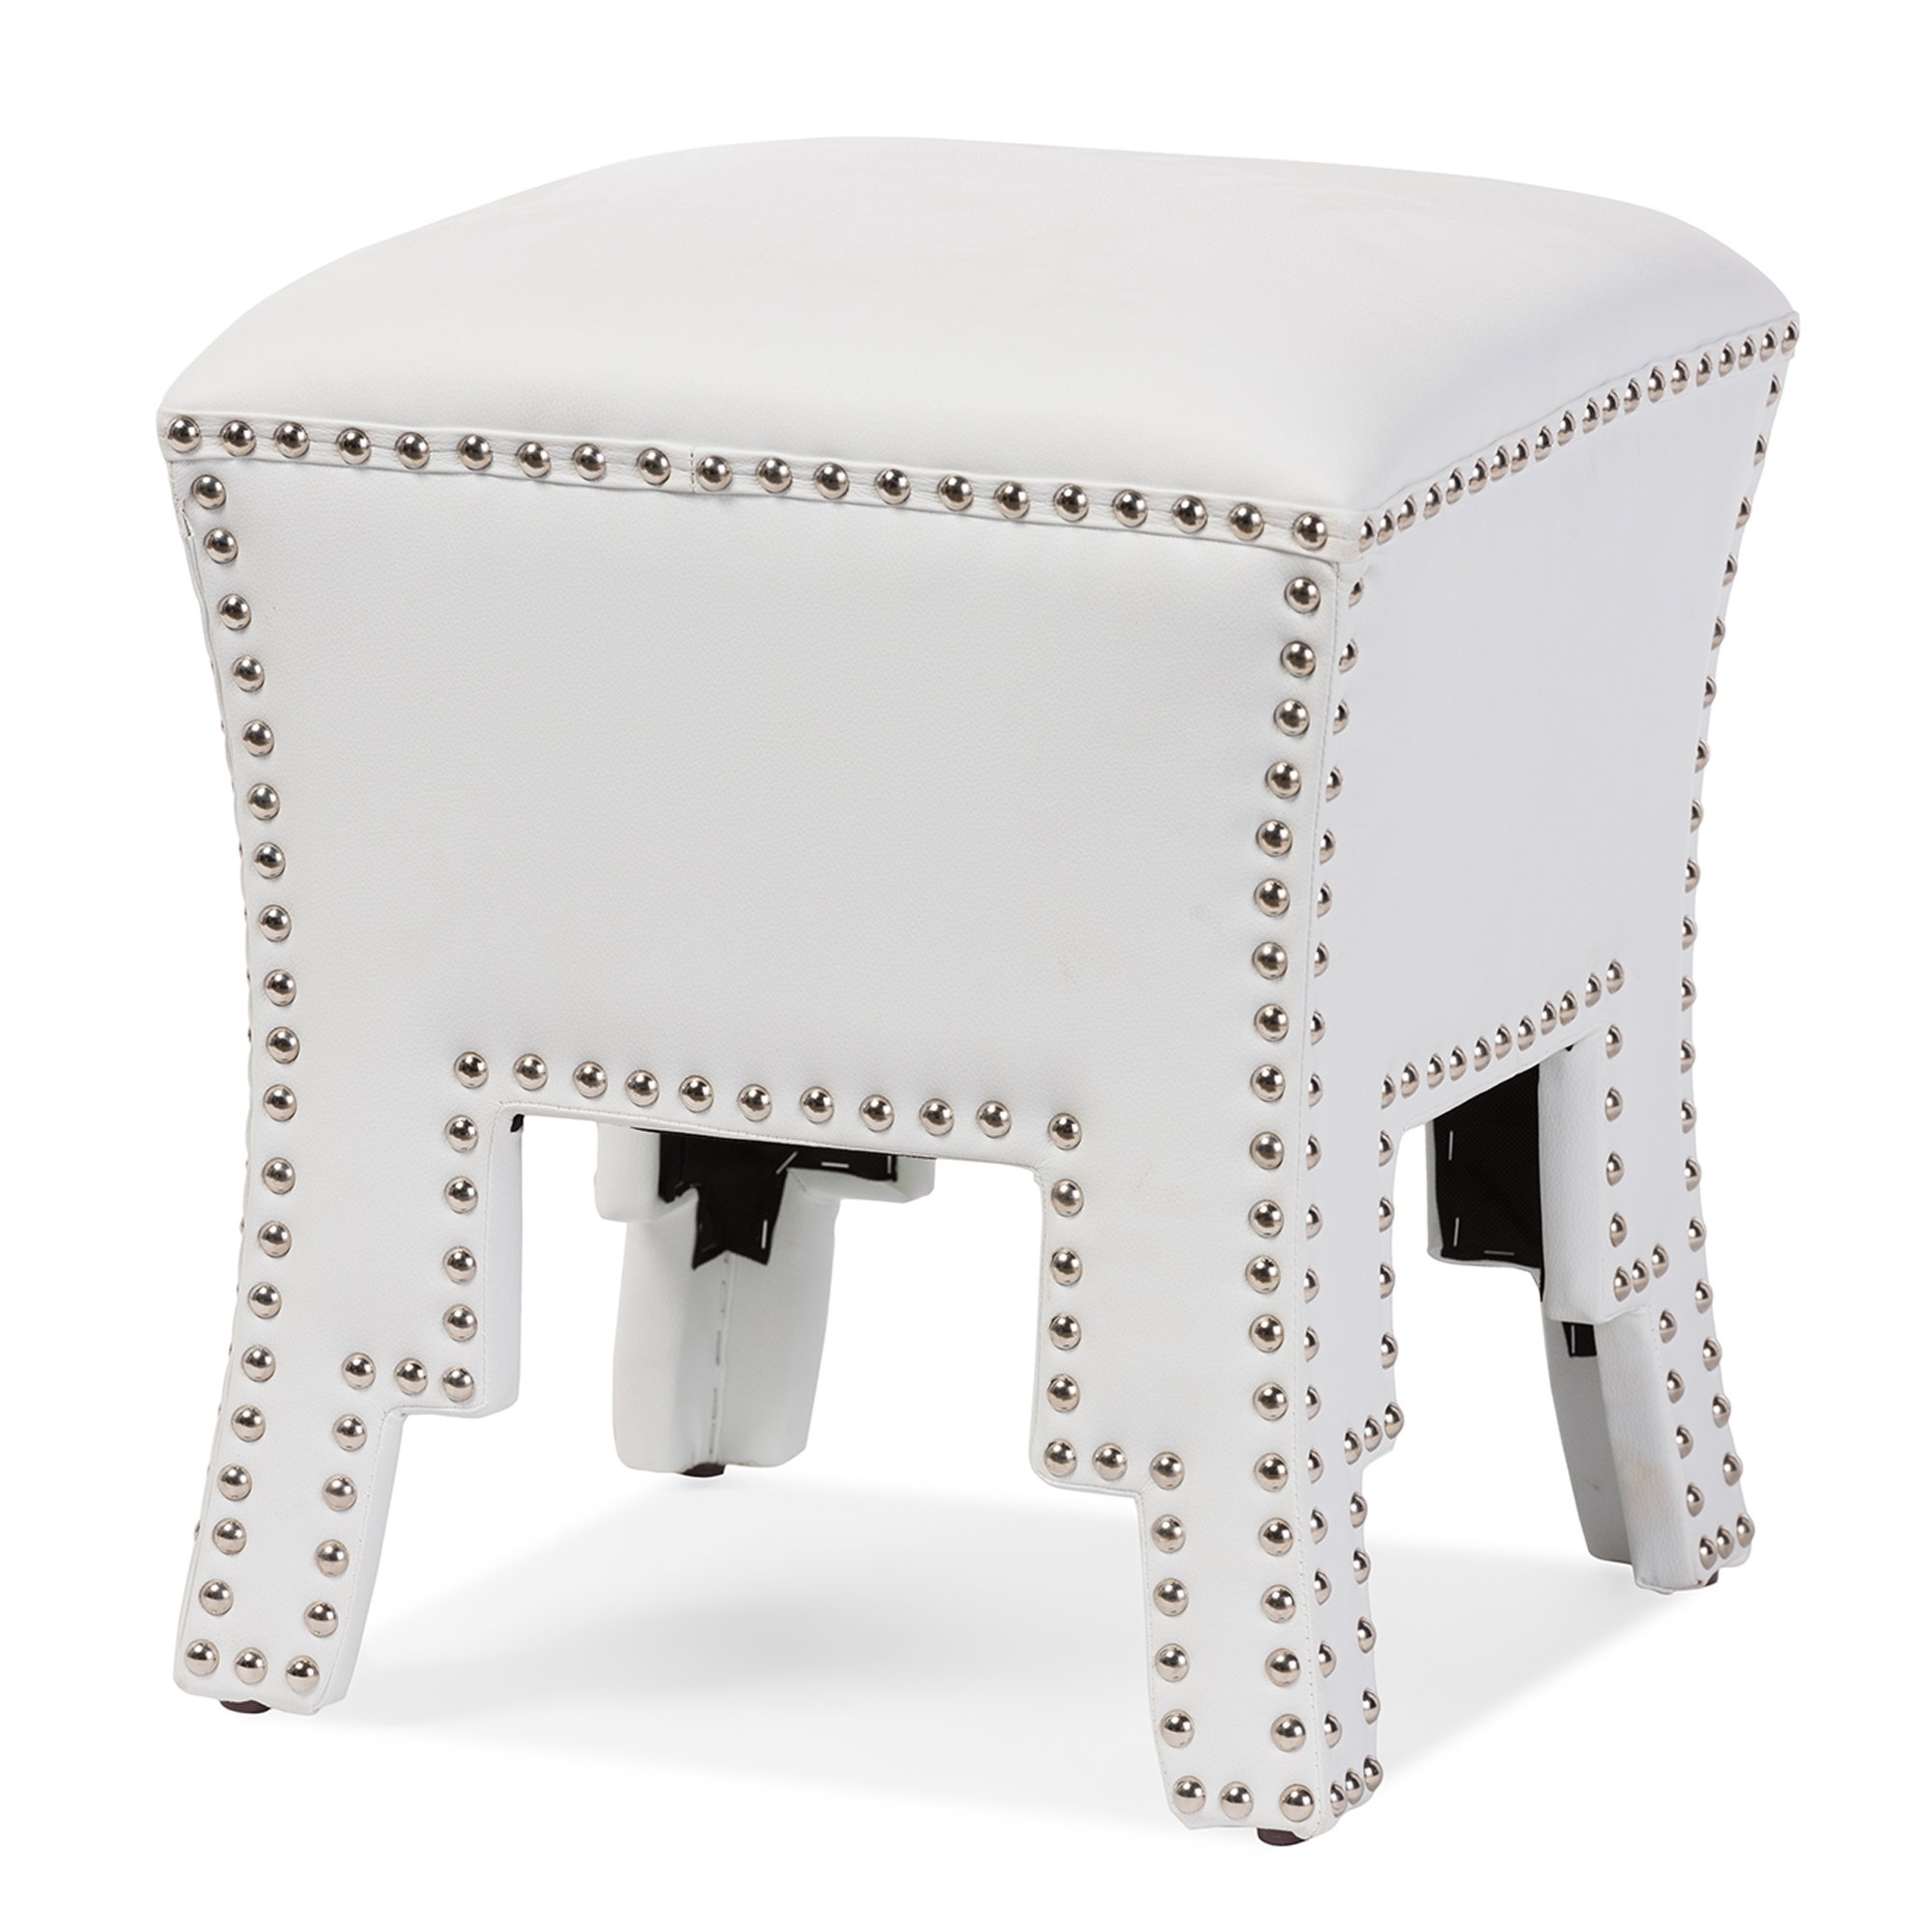 ... Baxton Studio Bouverie Modern and Contemporary White Faux Leather Nail head Ottoman Stool - BSOBBT5202- ...  sc 1 st  Baxton Studio Outlet & Baxton Studio Bouverie Modern and Contemporary White Faux Leather ... islam-shia.org